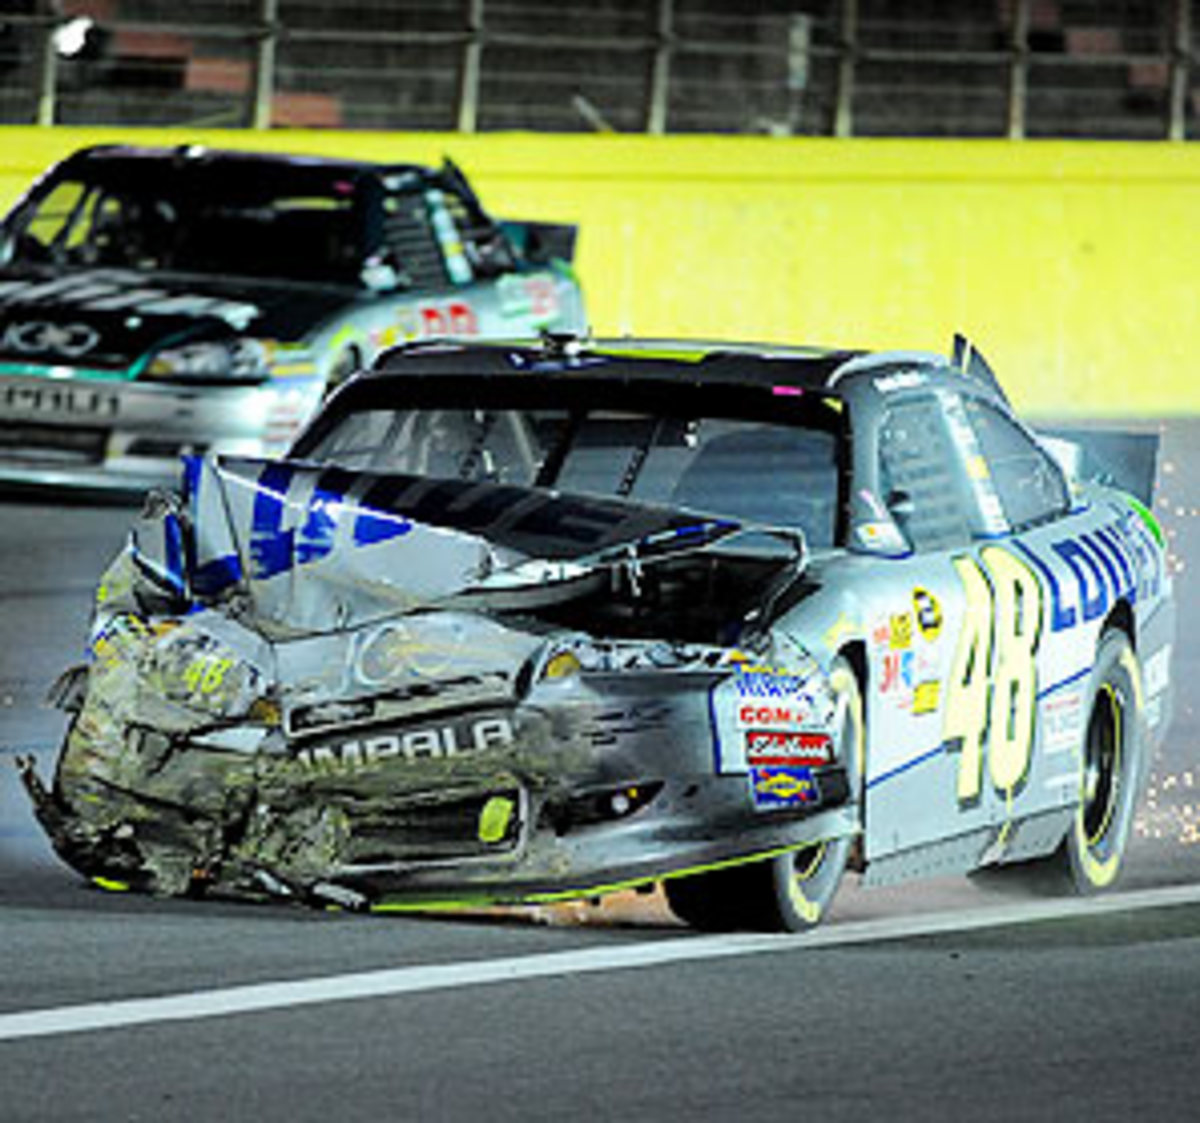 jimmie_crash.jpg